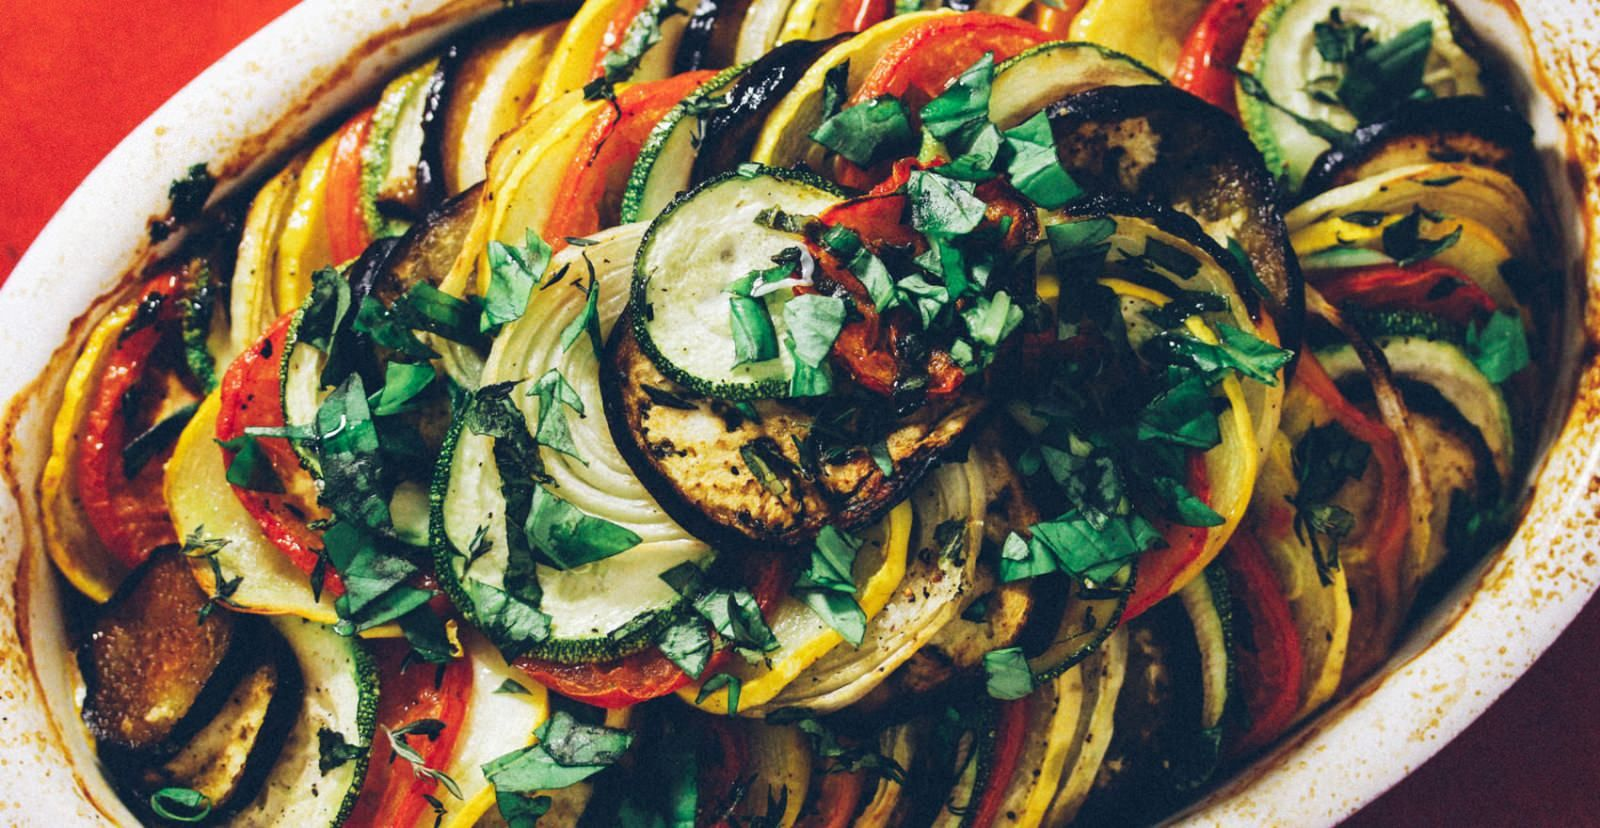 Pin On Squash And Zucchini Dishes